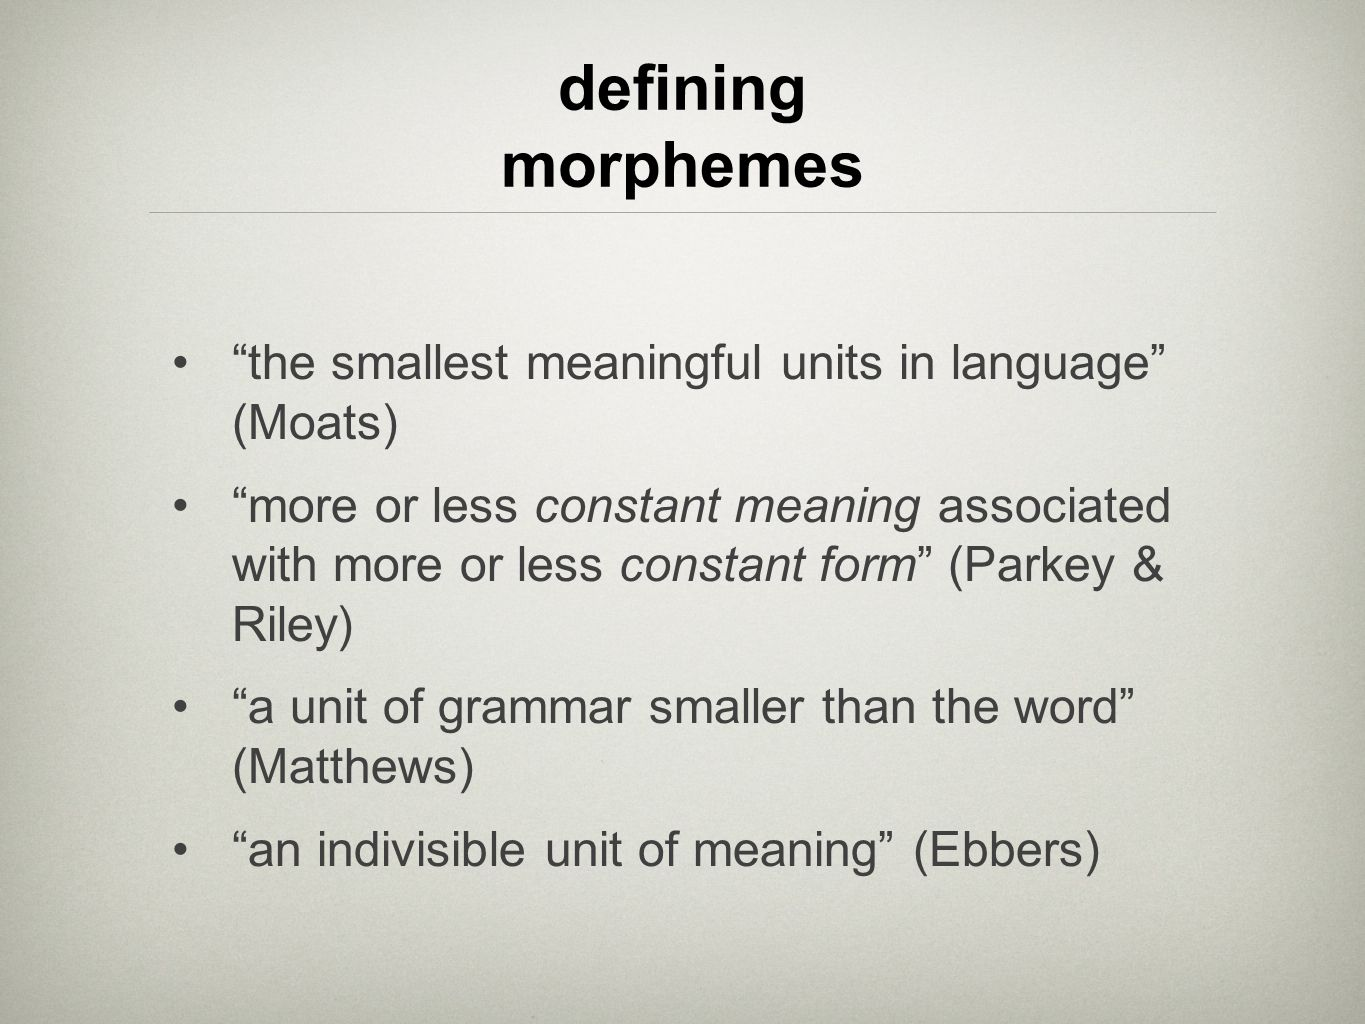 defining morphemes the smallest meaningful units in language (Moats)